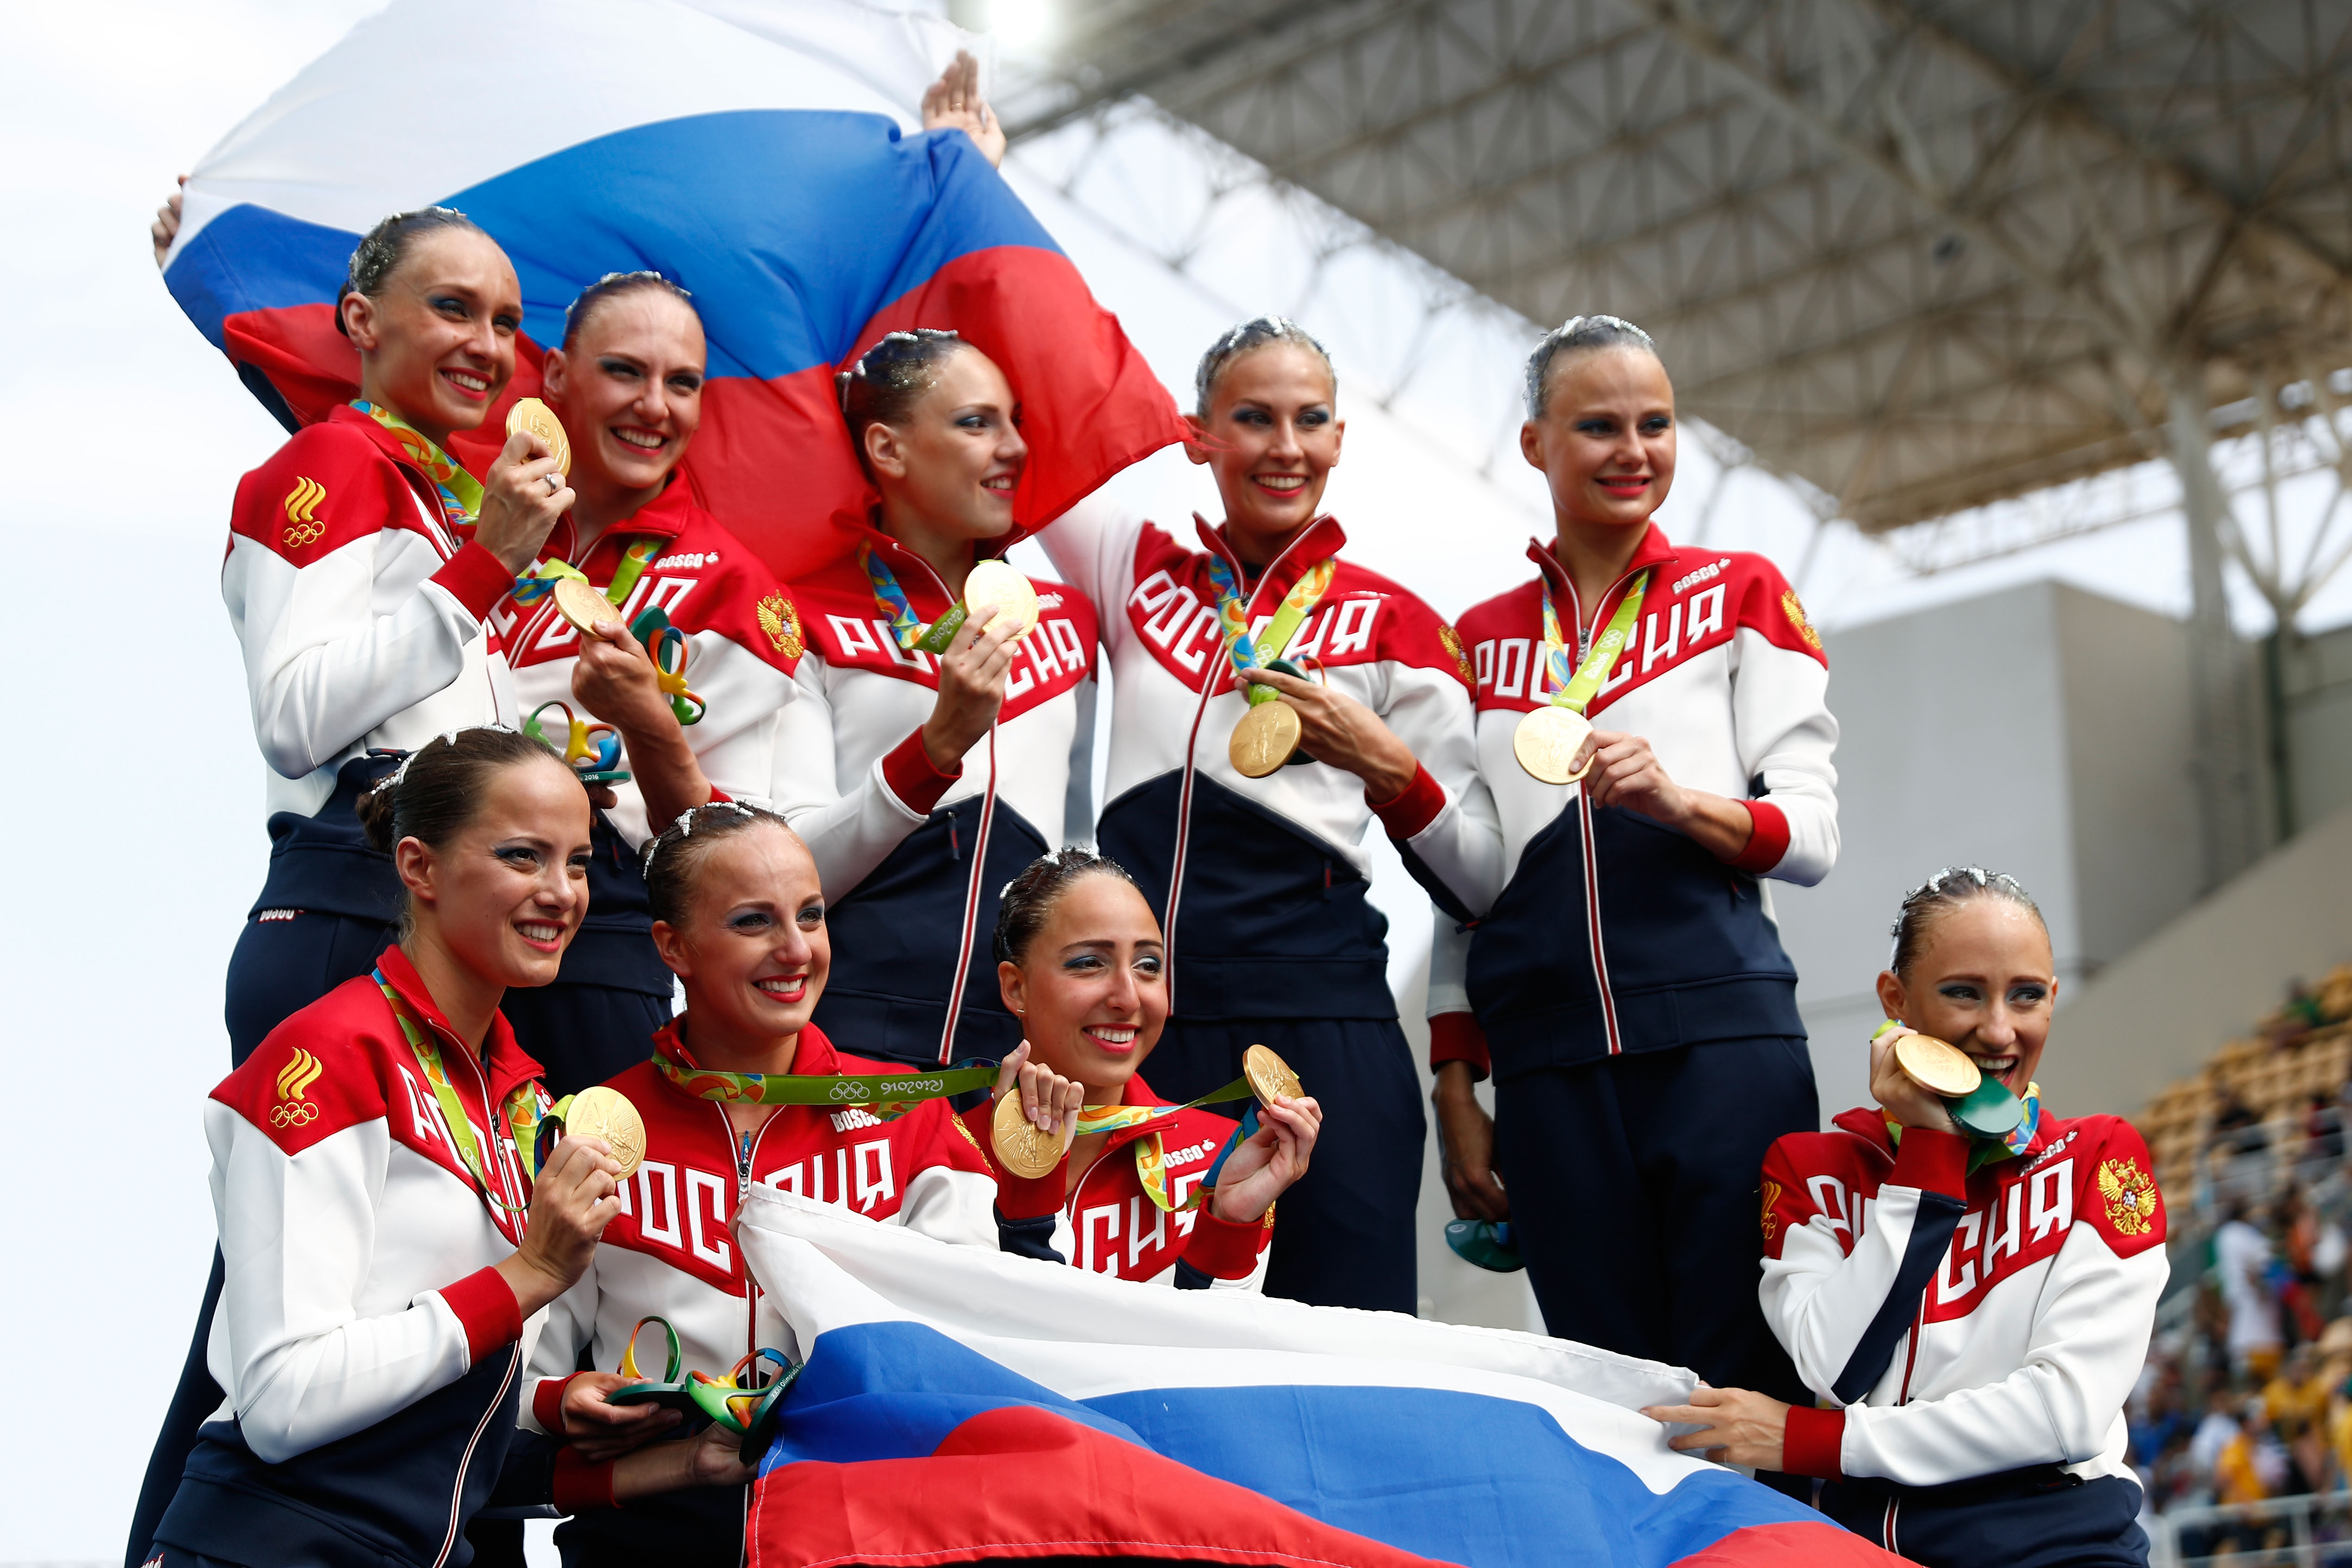 RIO DE JANEIRO, BRAZIL - AUGUST 19: Team Russia celebrates winning gold on the podium during the medal ceremony for the Synchronised Swimming Teams Free Routine on Day 14 of the Rio 2016 Olympic Games at the Maria Lenk Aquatics Centre on August 19, 2016 in Rio de Janeiro, Brazil. (Photo by Clive Rose/Getty Images)